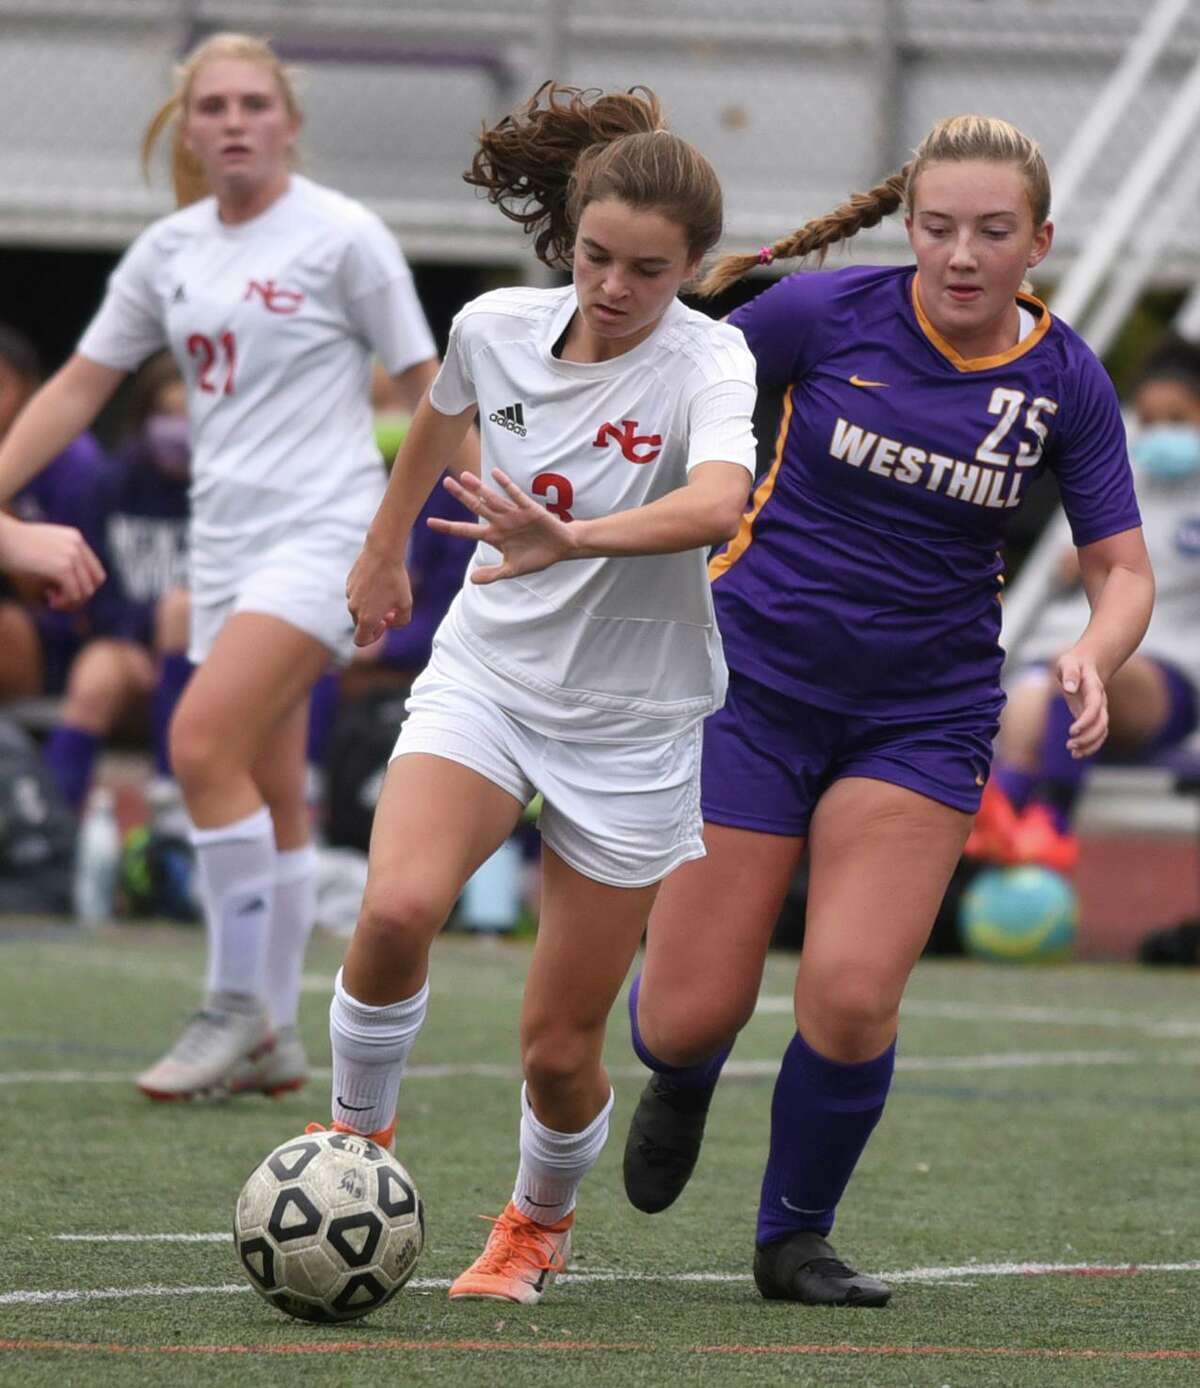 New Canaan's Dillyn Patten (3) controls the ball in traffic during the Rams' girls soccer game against Westhill in Stamford on Tuesday, Oct. 27, 2020.